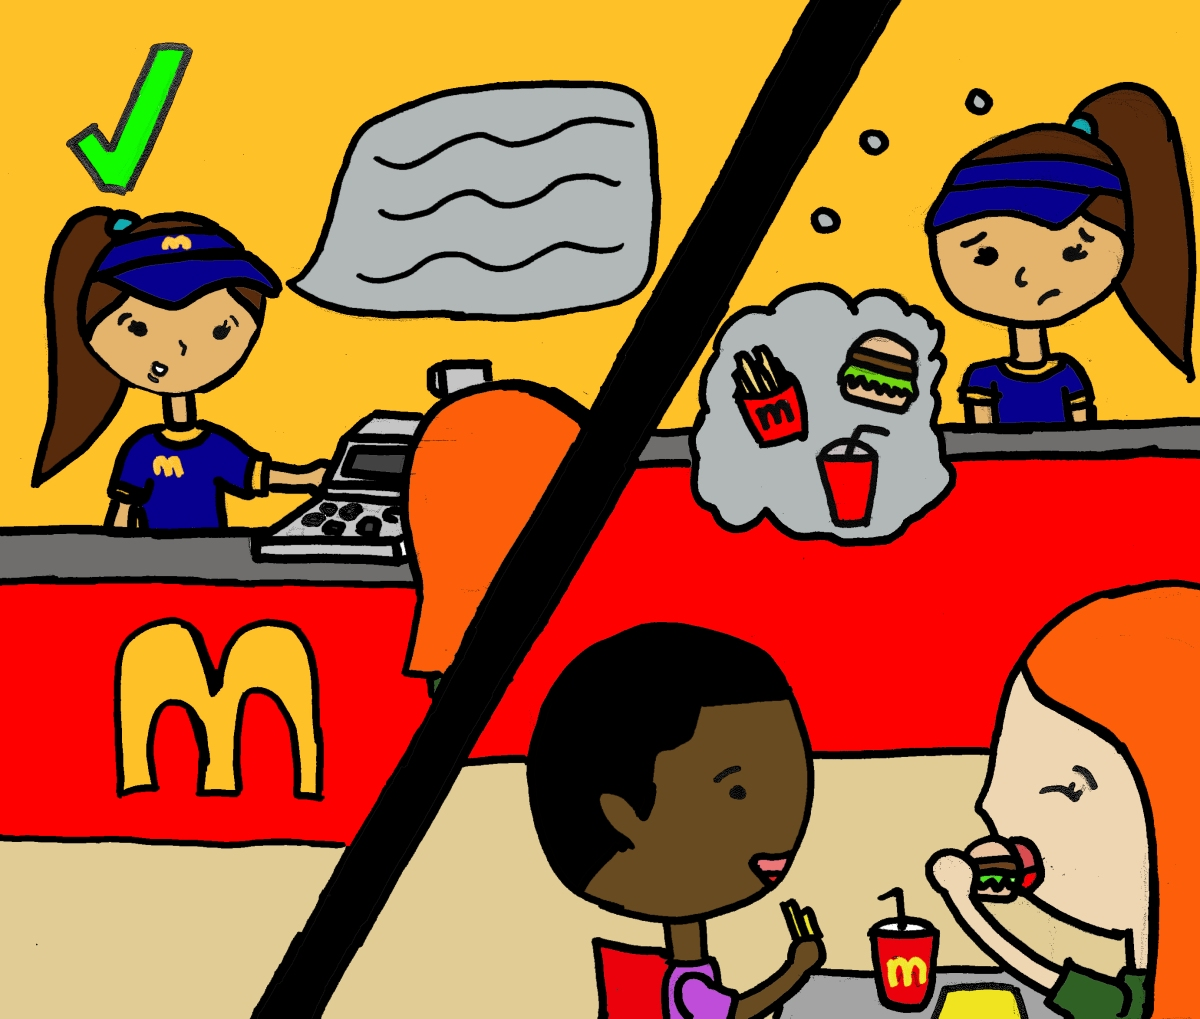 Is McDonald's the right place to work?